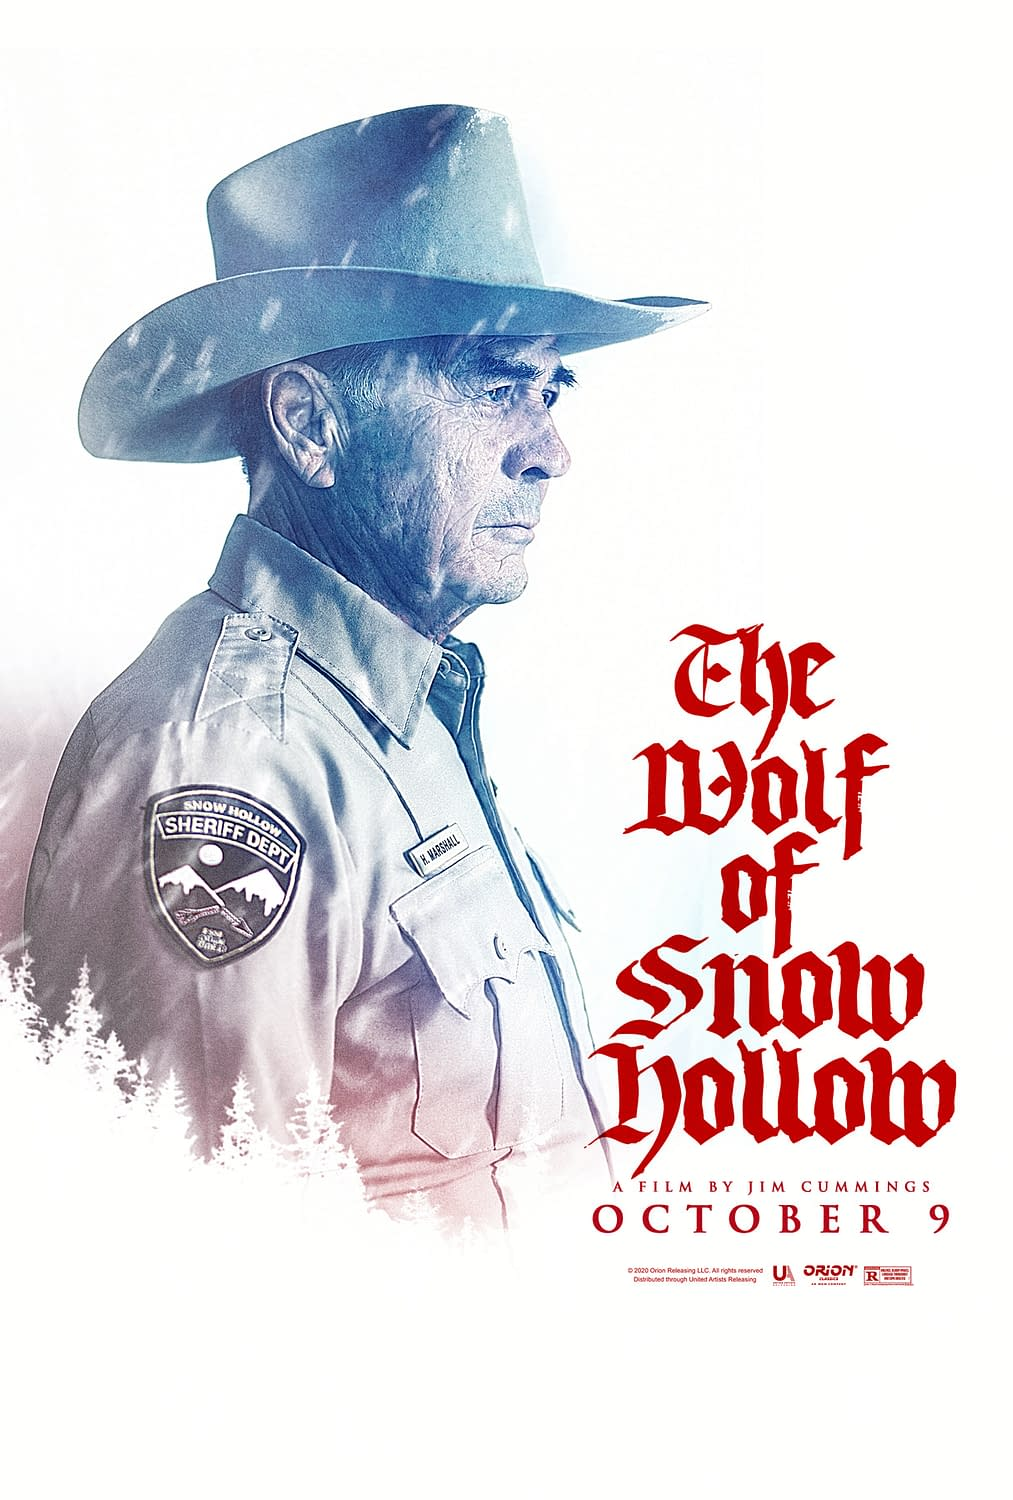 New Clip And Posters From The Wolf Of Snow Hollow Debut